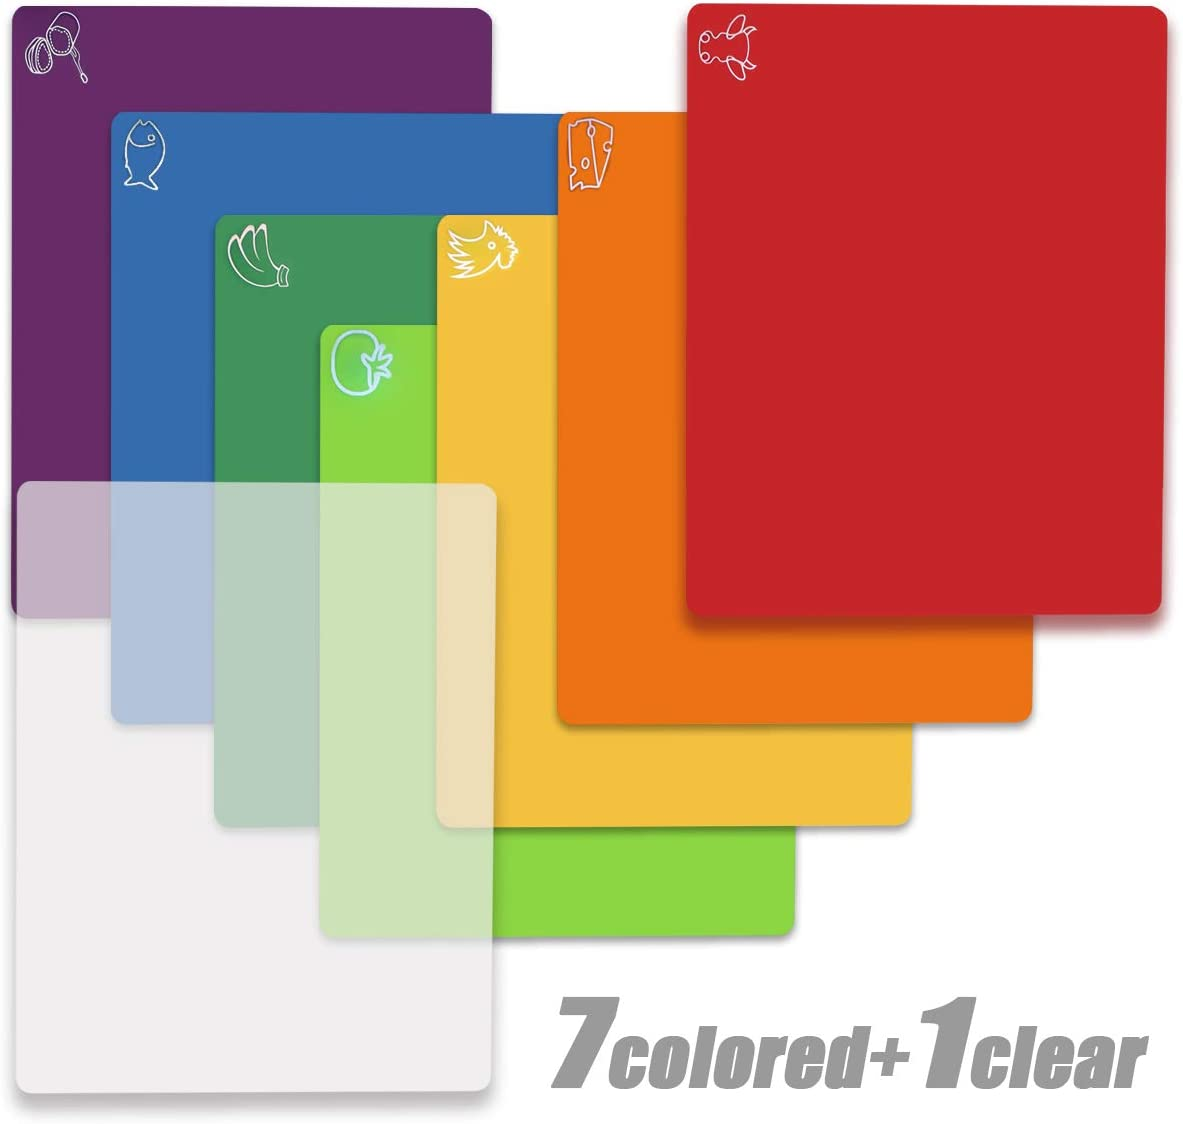 Cutting Board Mats Flexible Plastic Colored Mats With Food Icons, Fotouzy BPA-Free, Non-Porous, Anti-skid back and Dishwasher Safe, Set of 7+1